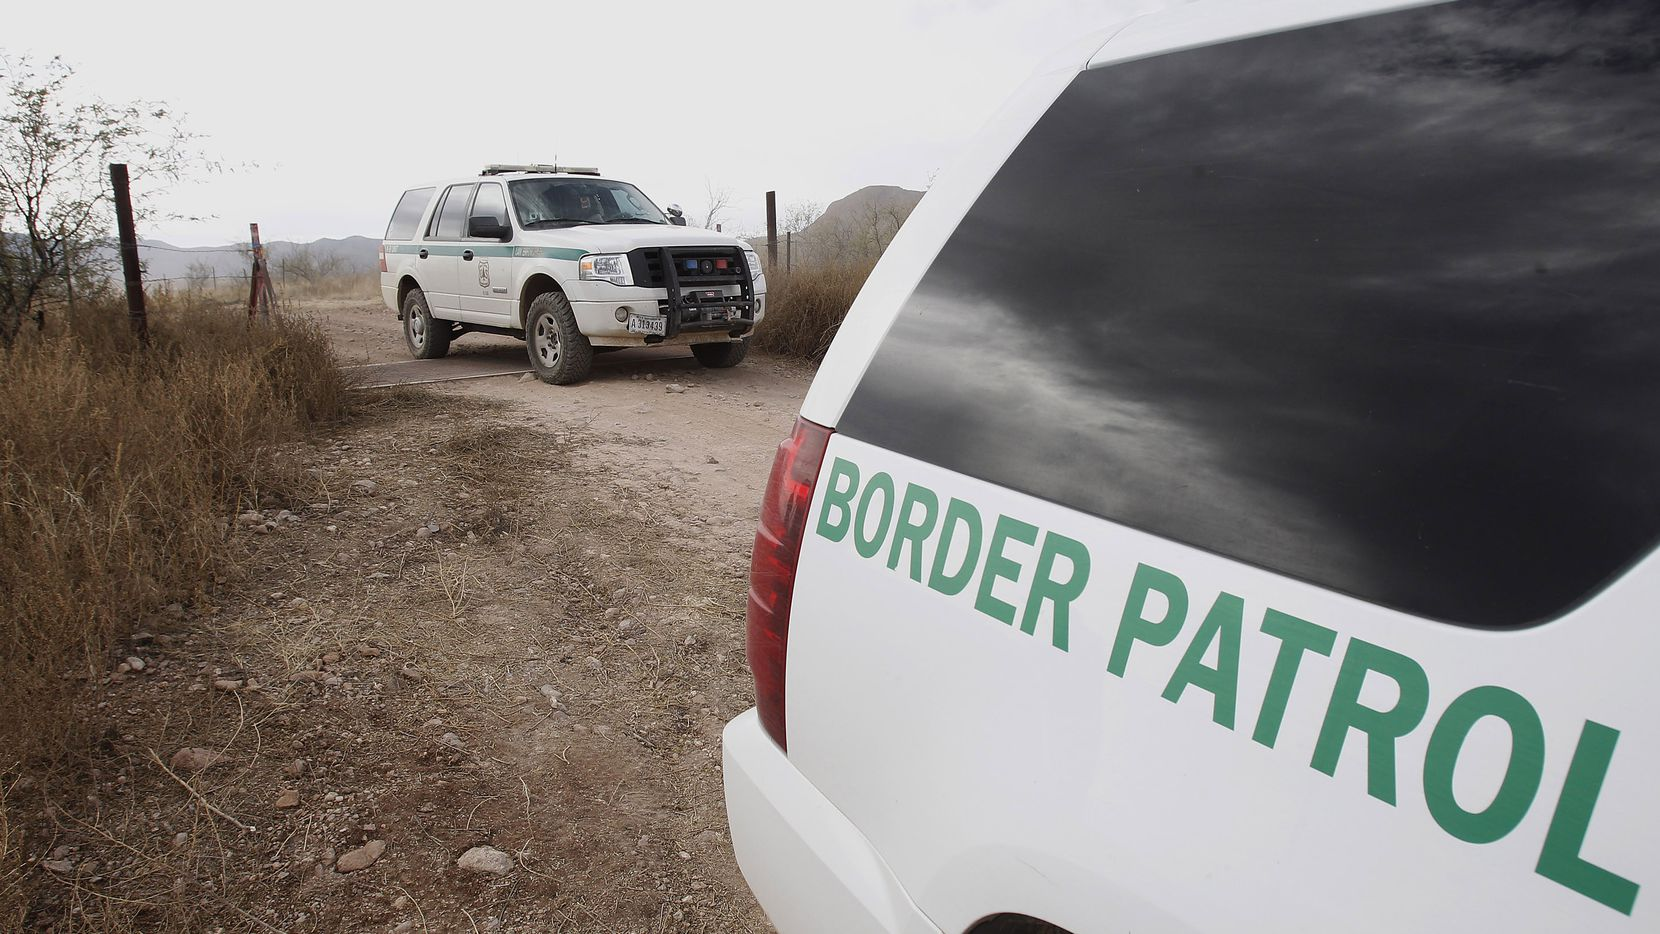 Joep, a drug-sniffing dog, alerted U.S. Customs and Border Protection officers about 1 p.m. to the smell of narcotics in the gas tank area of a 1989 Chevrolet 1500 pickup at the Paso Del Norte international crossing from Mexico, officials said.